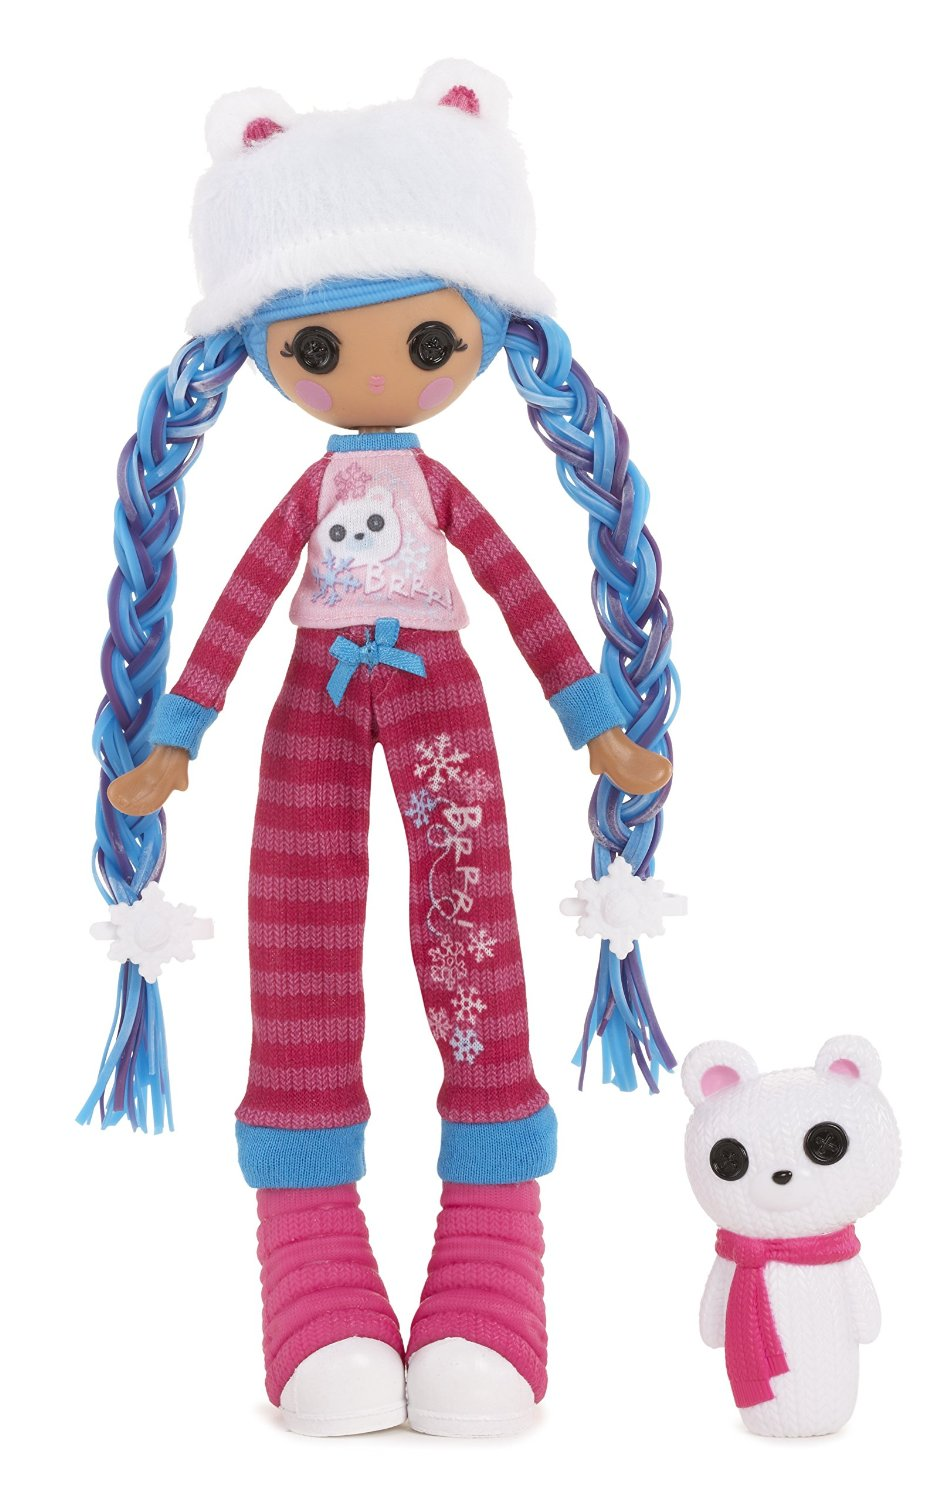 displaying 9 images for lalaloopsy coloring pages mittens displaying 9 images for lalaloopsy coloring pages mittens